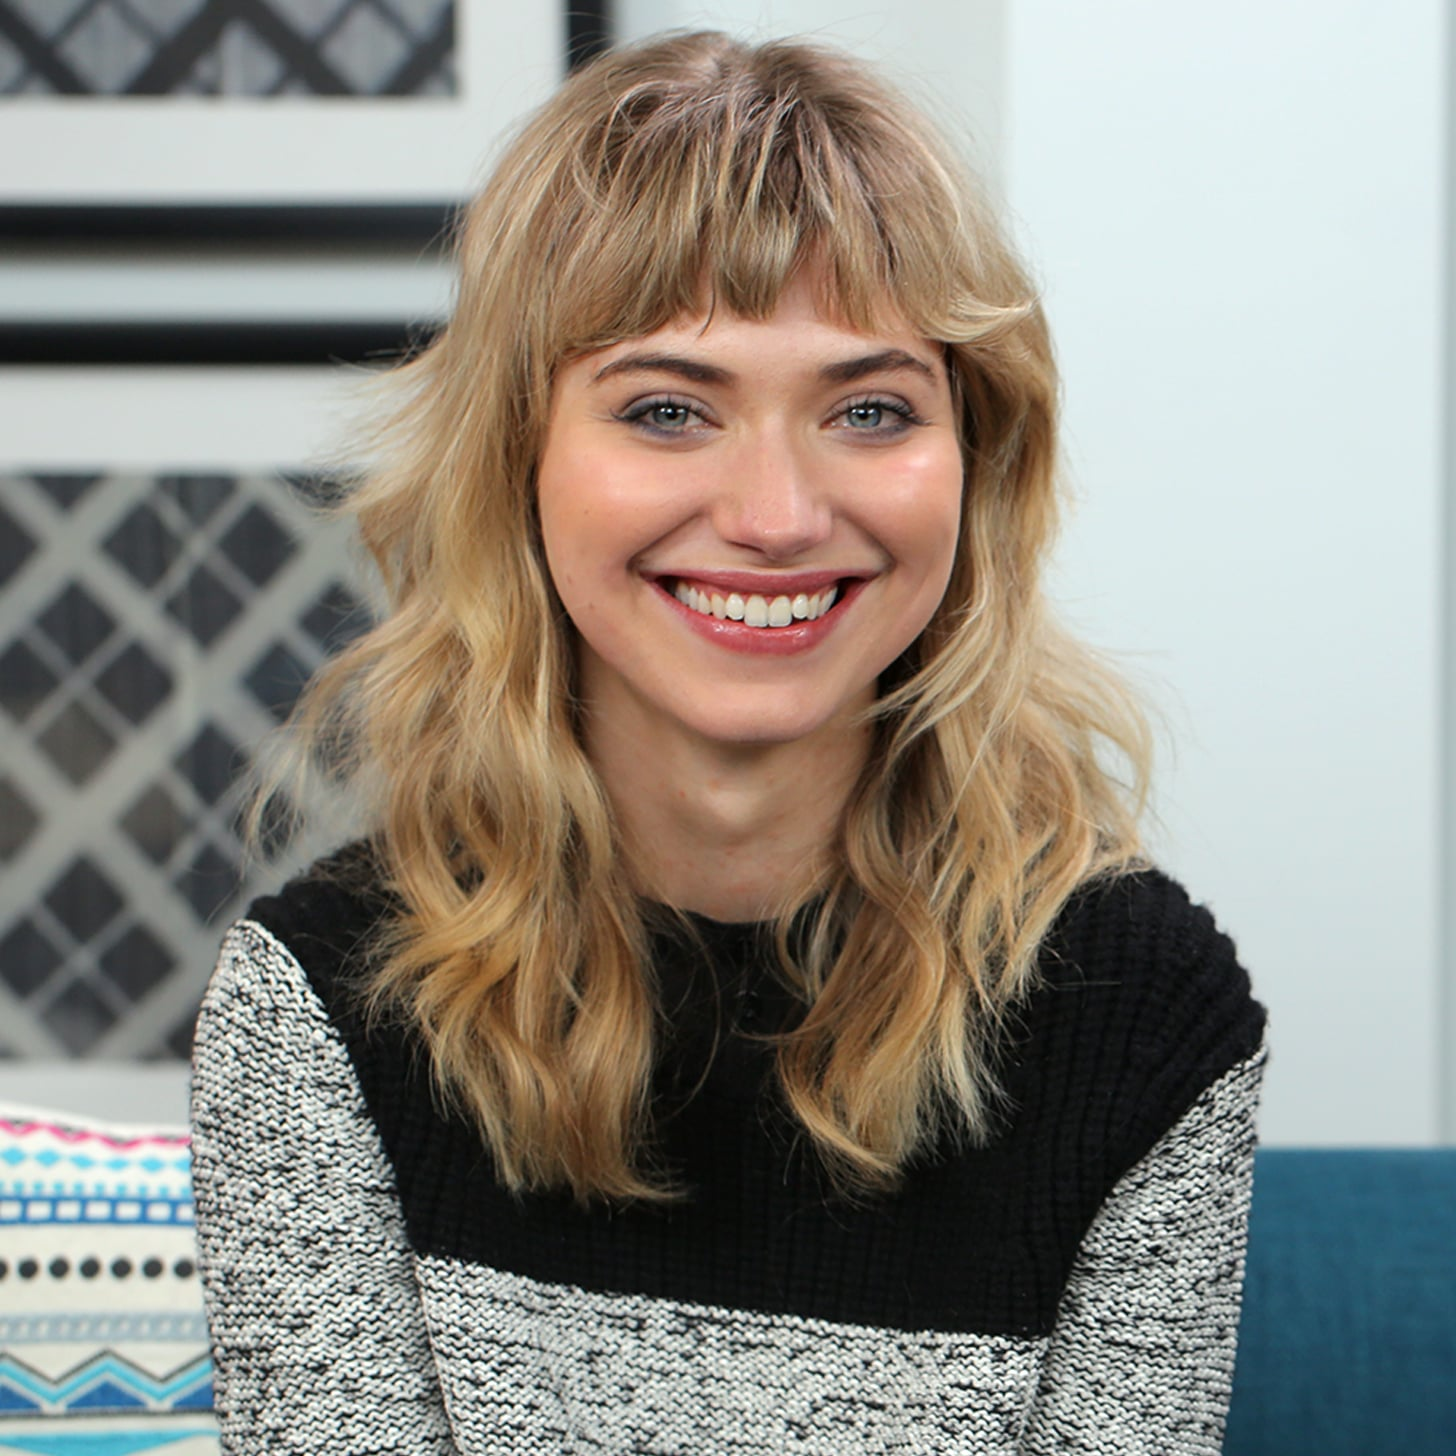 Images Imogen Poots nude photos 2019